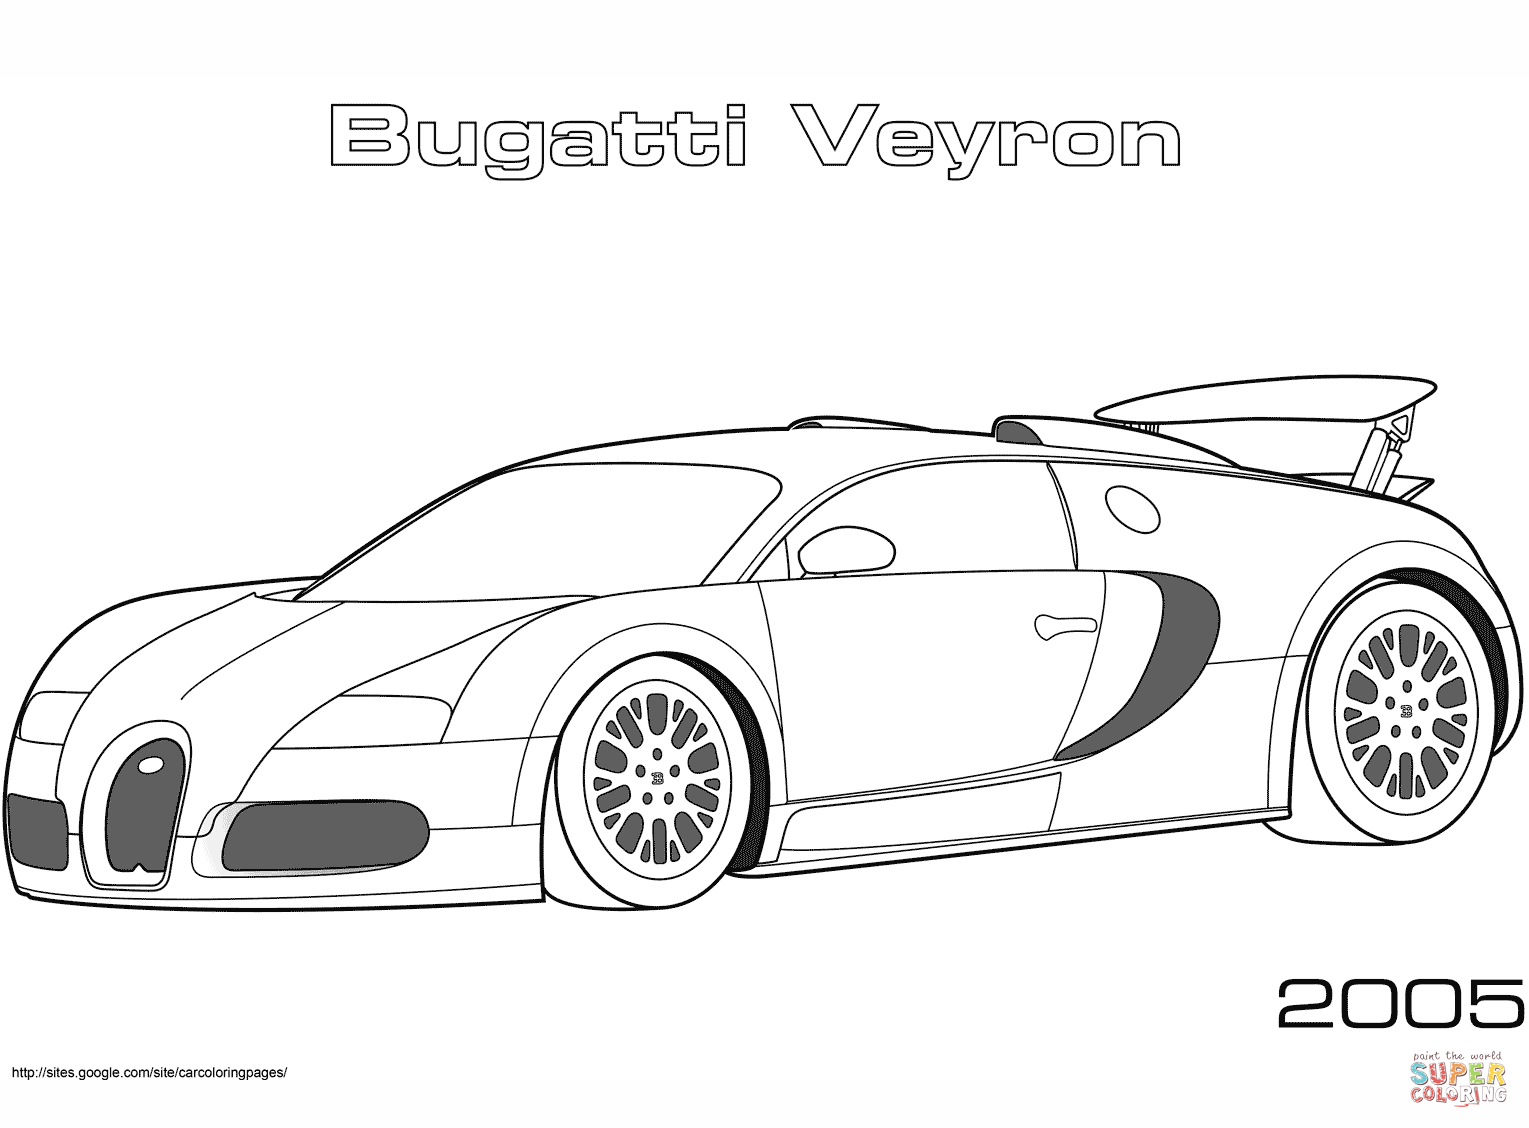 2005 Bugatti Veyron Coloring Page Free Printable Coloring Pages